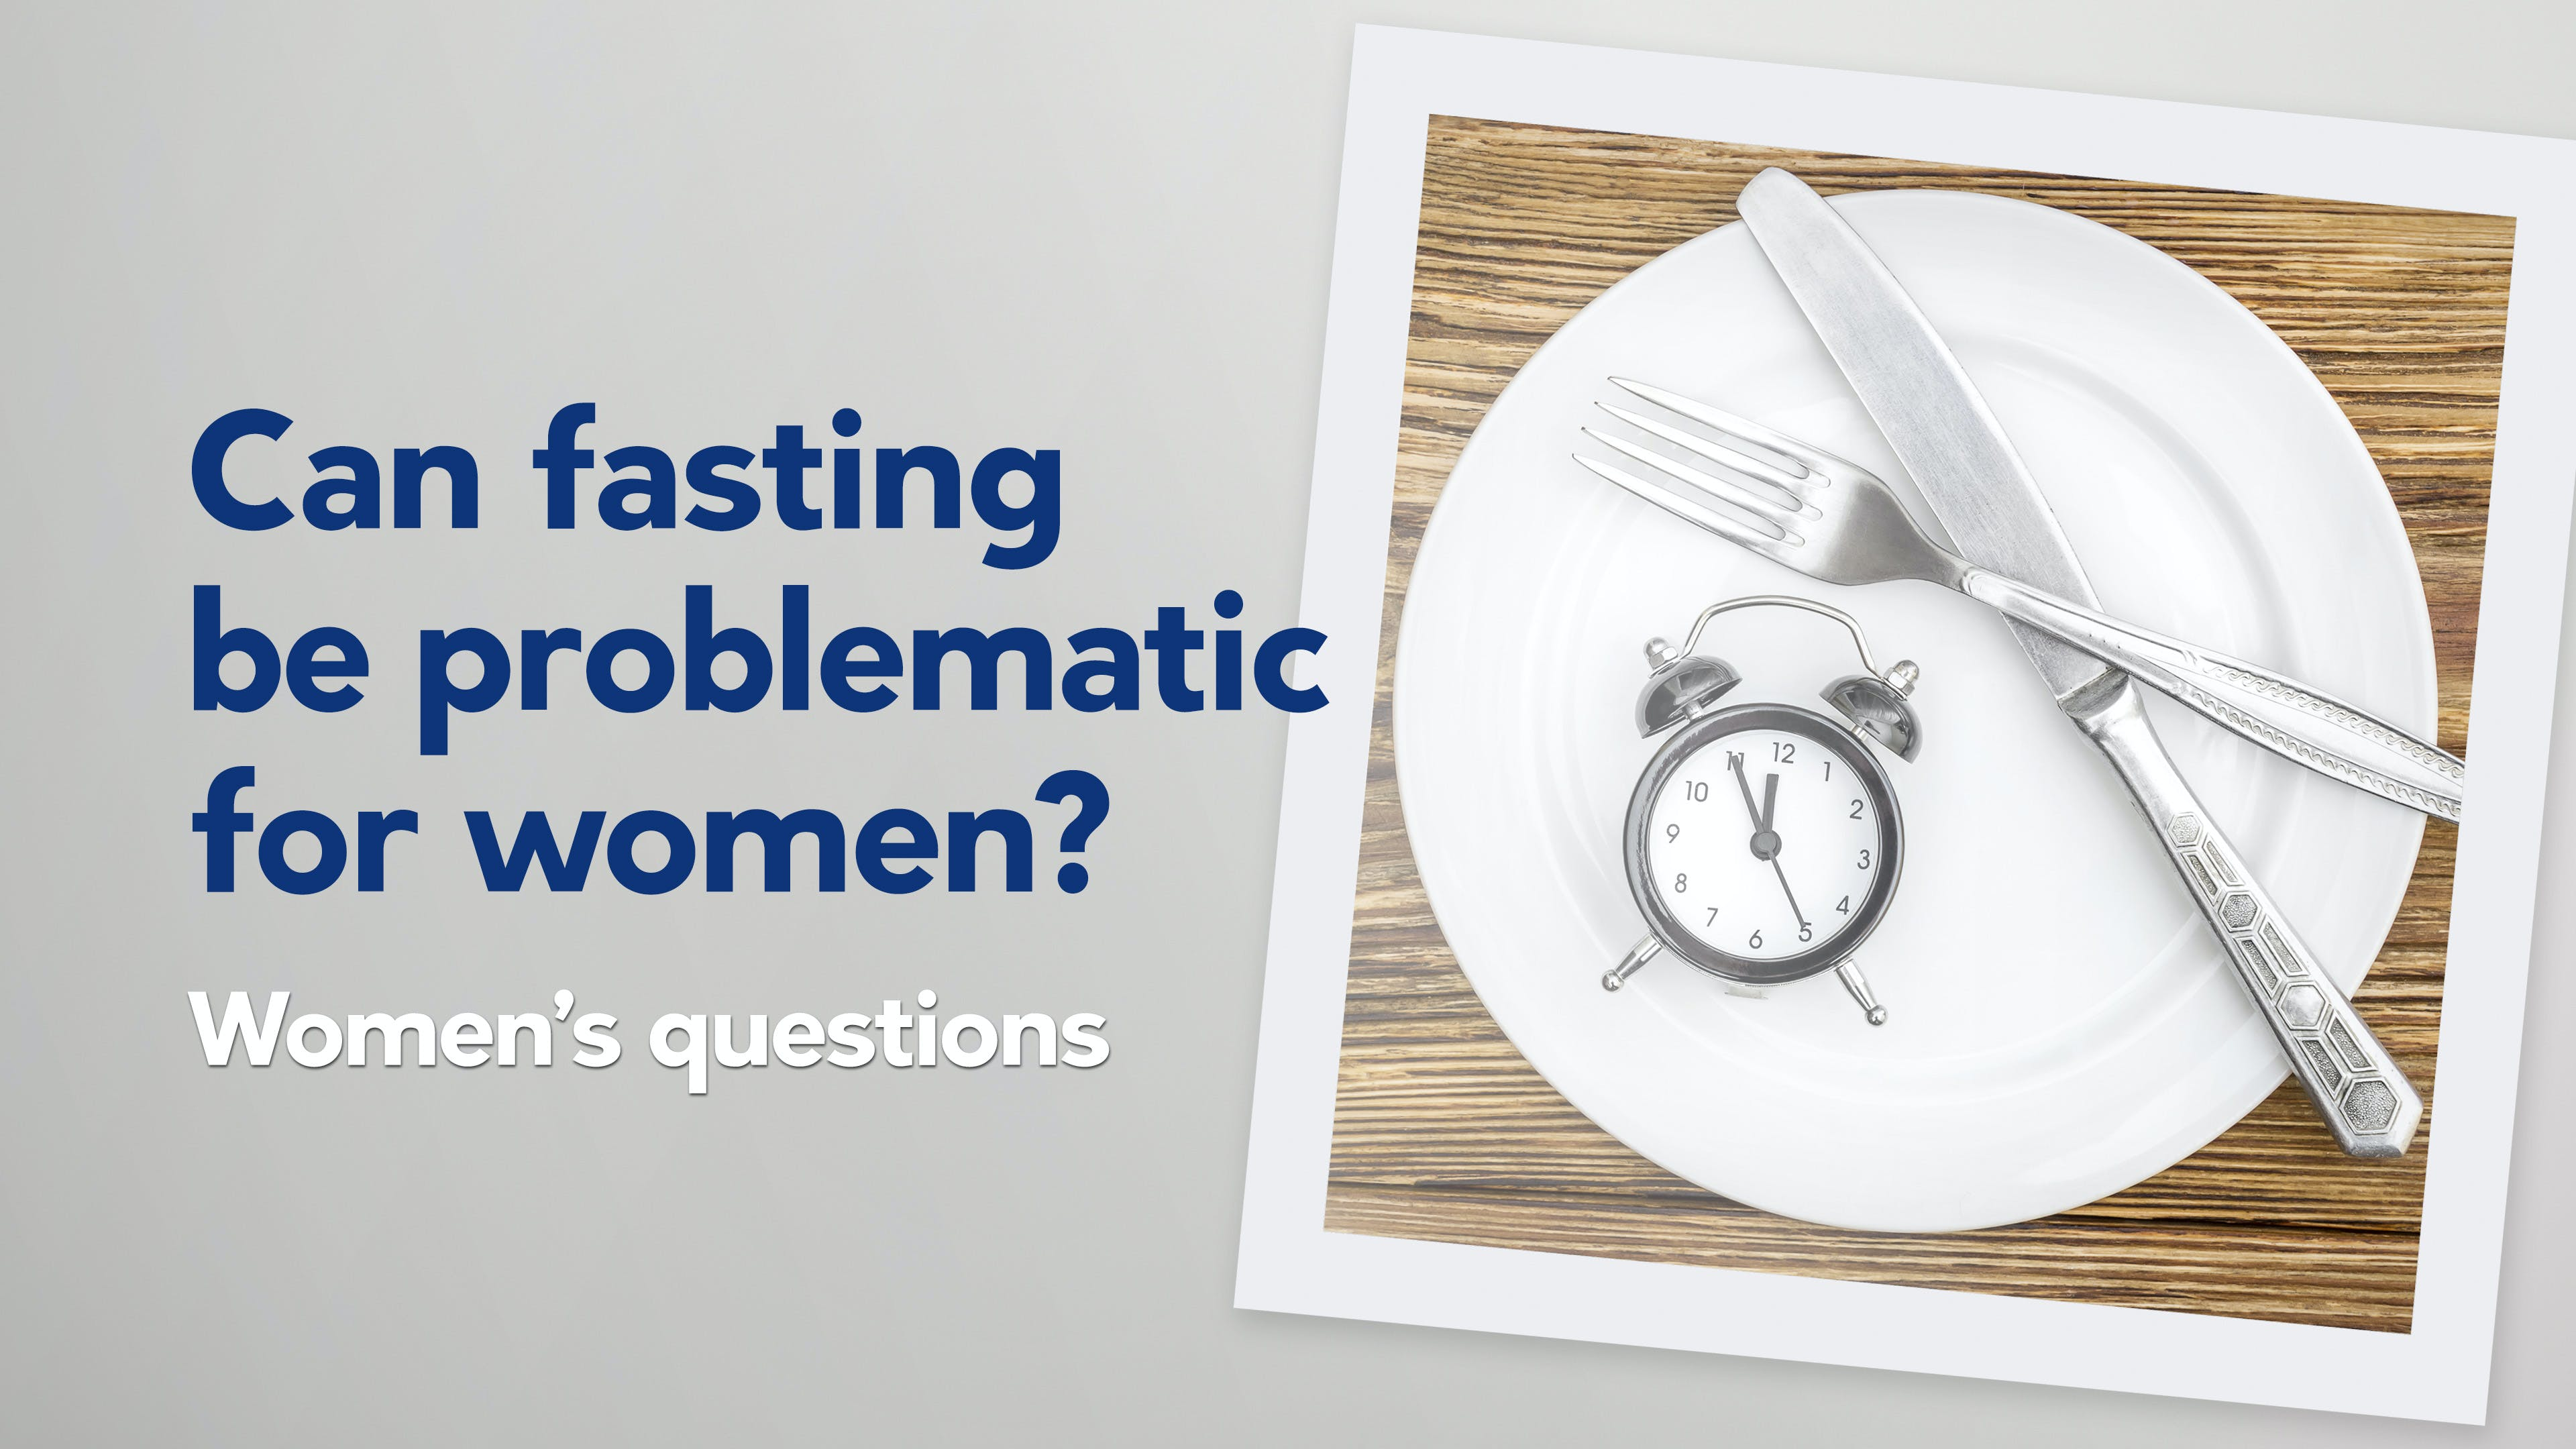 Can fasting be problematic for women?